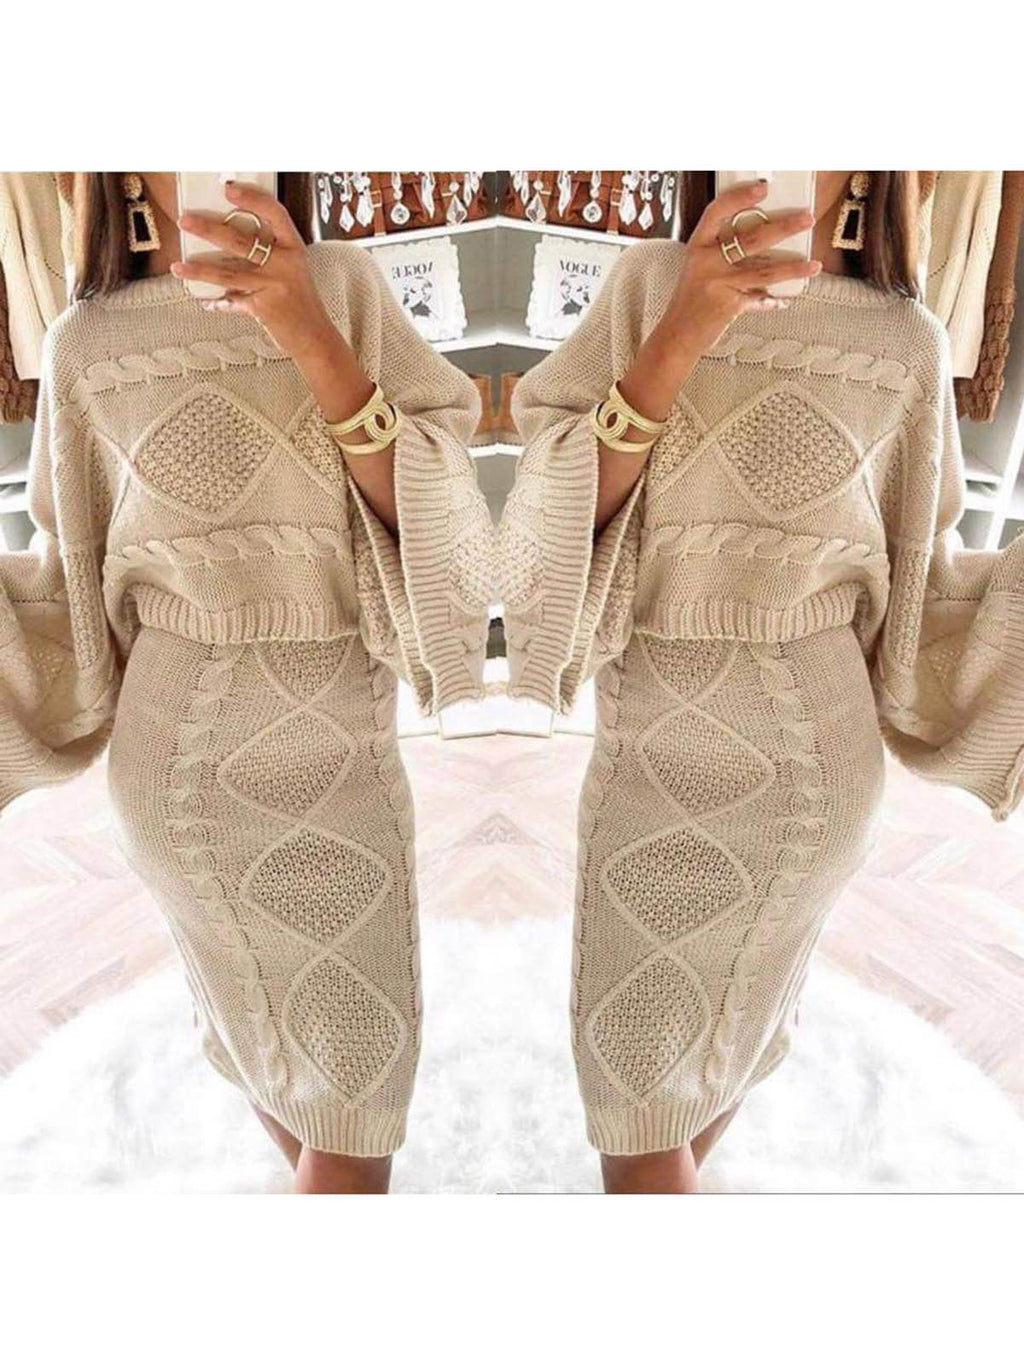 Women's Stylish Two Piece Casual Warm Knit Wears Sets Jumpsuits